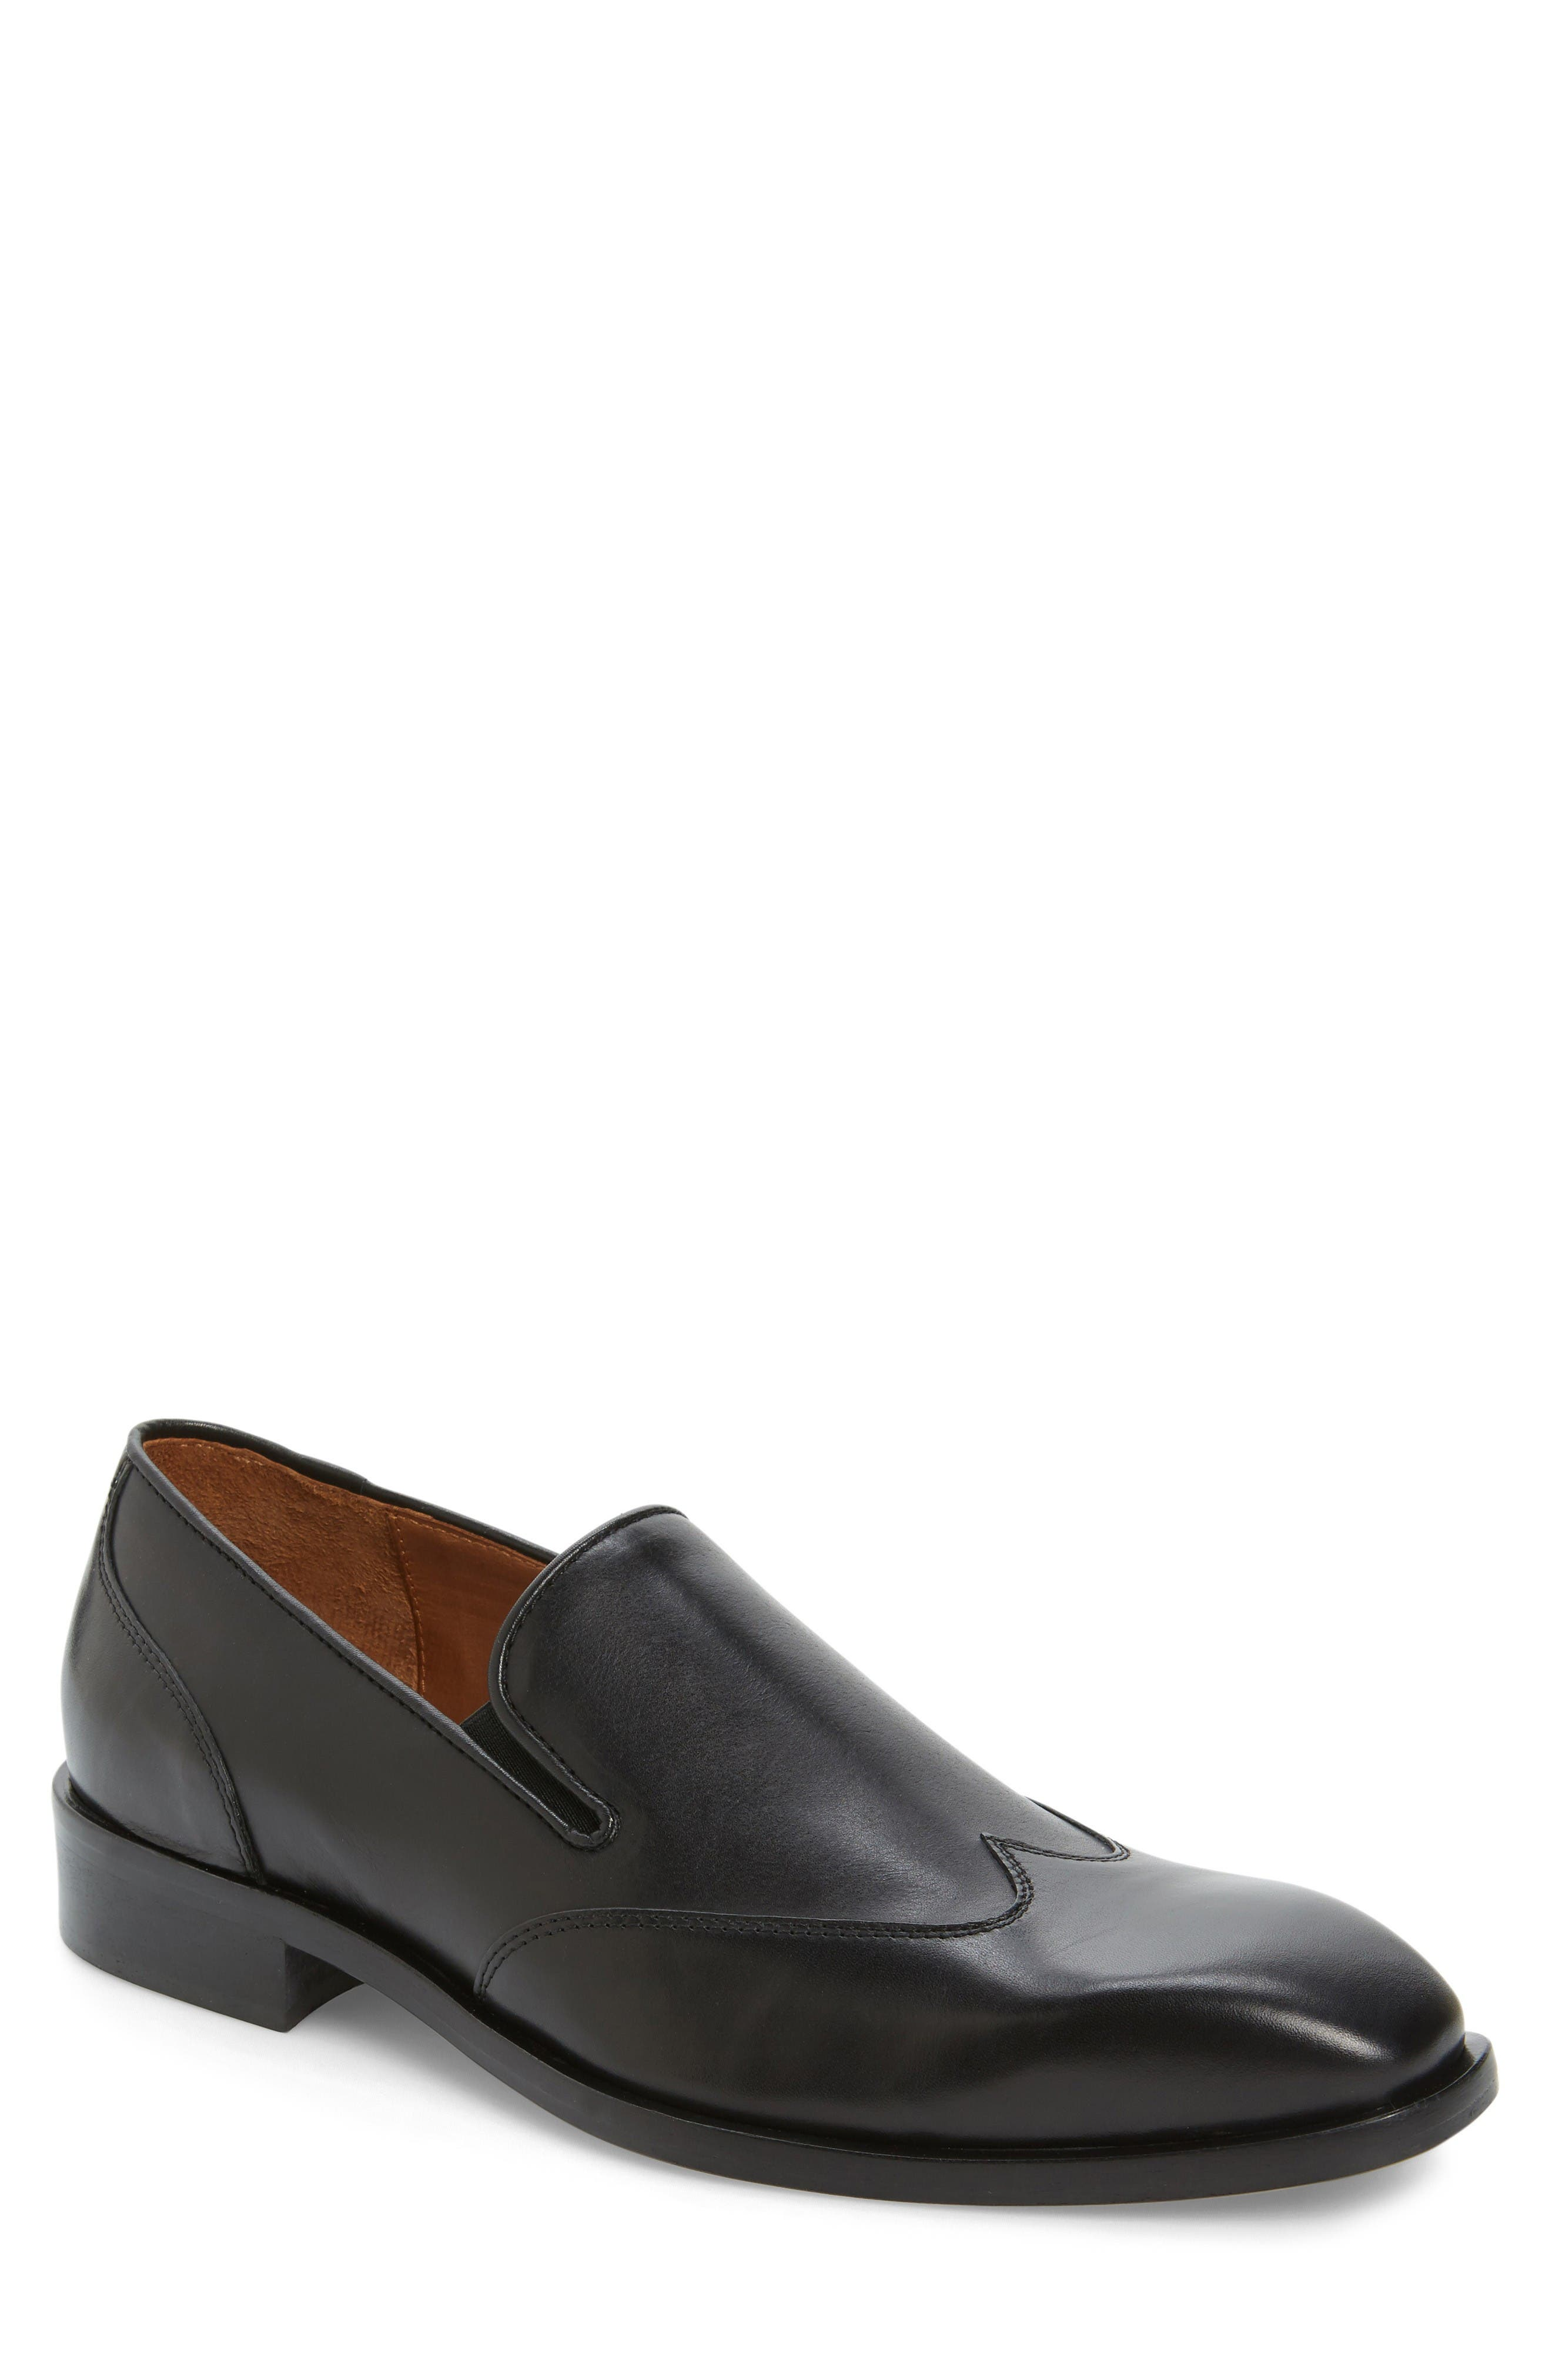 Valente Venetian Loafer,                             Main thumbnail 1, color,                             Black Leather